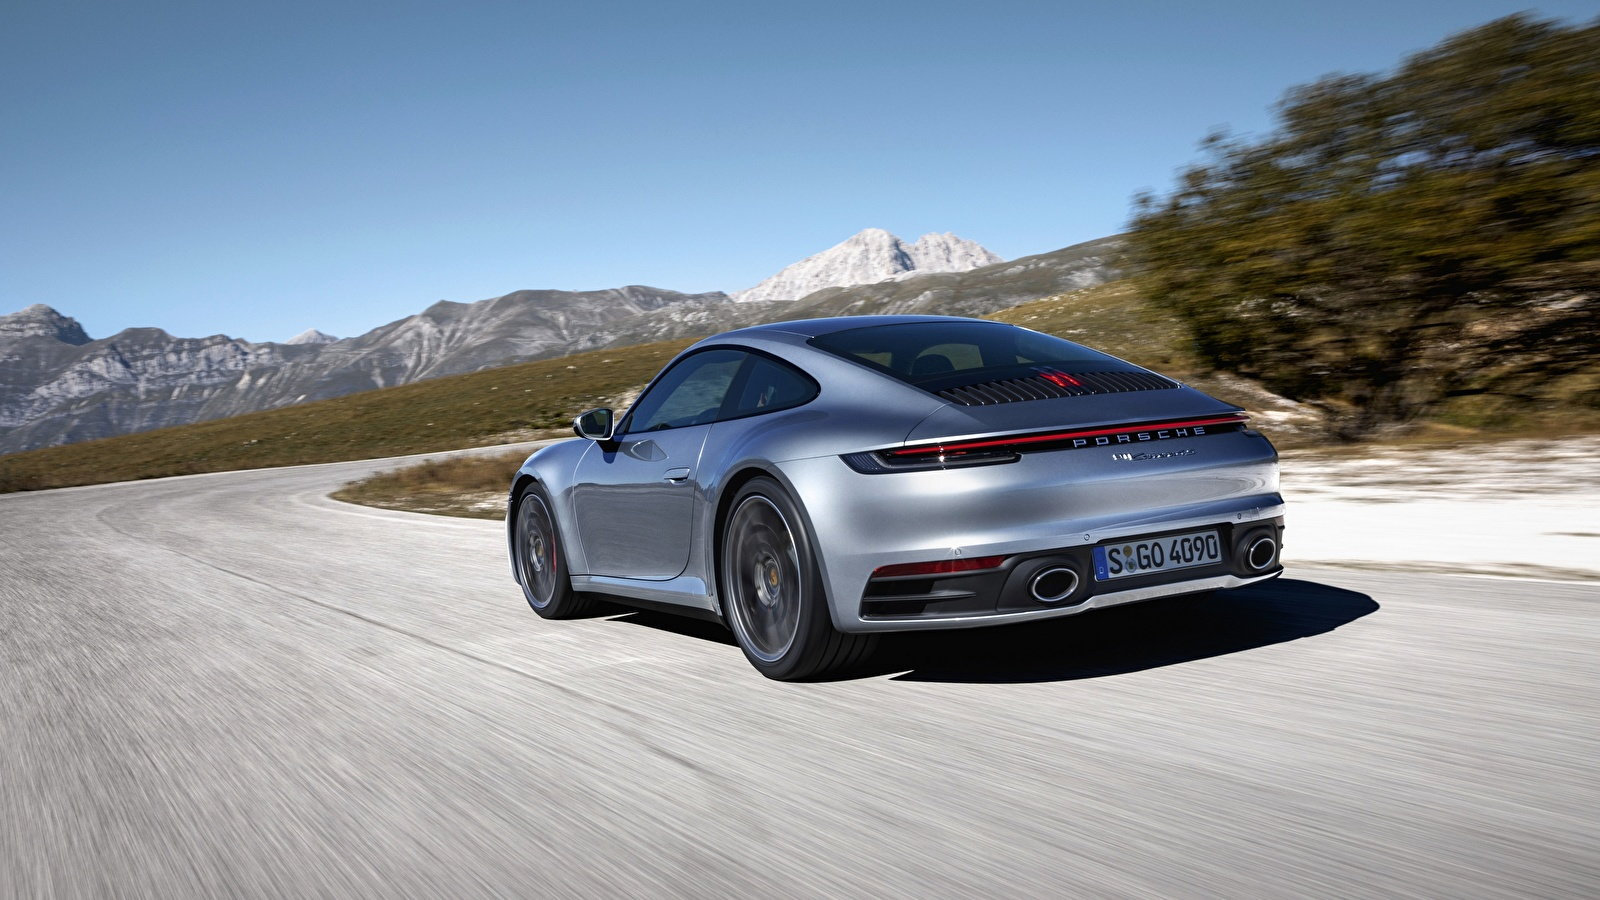 The New 992 From a Coach's Perspective